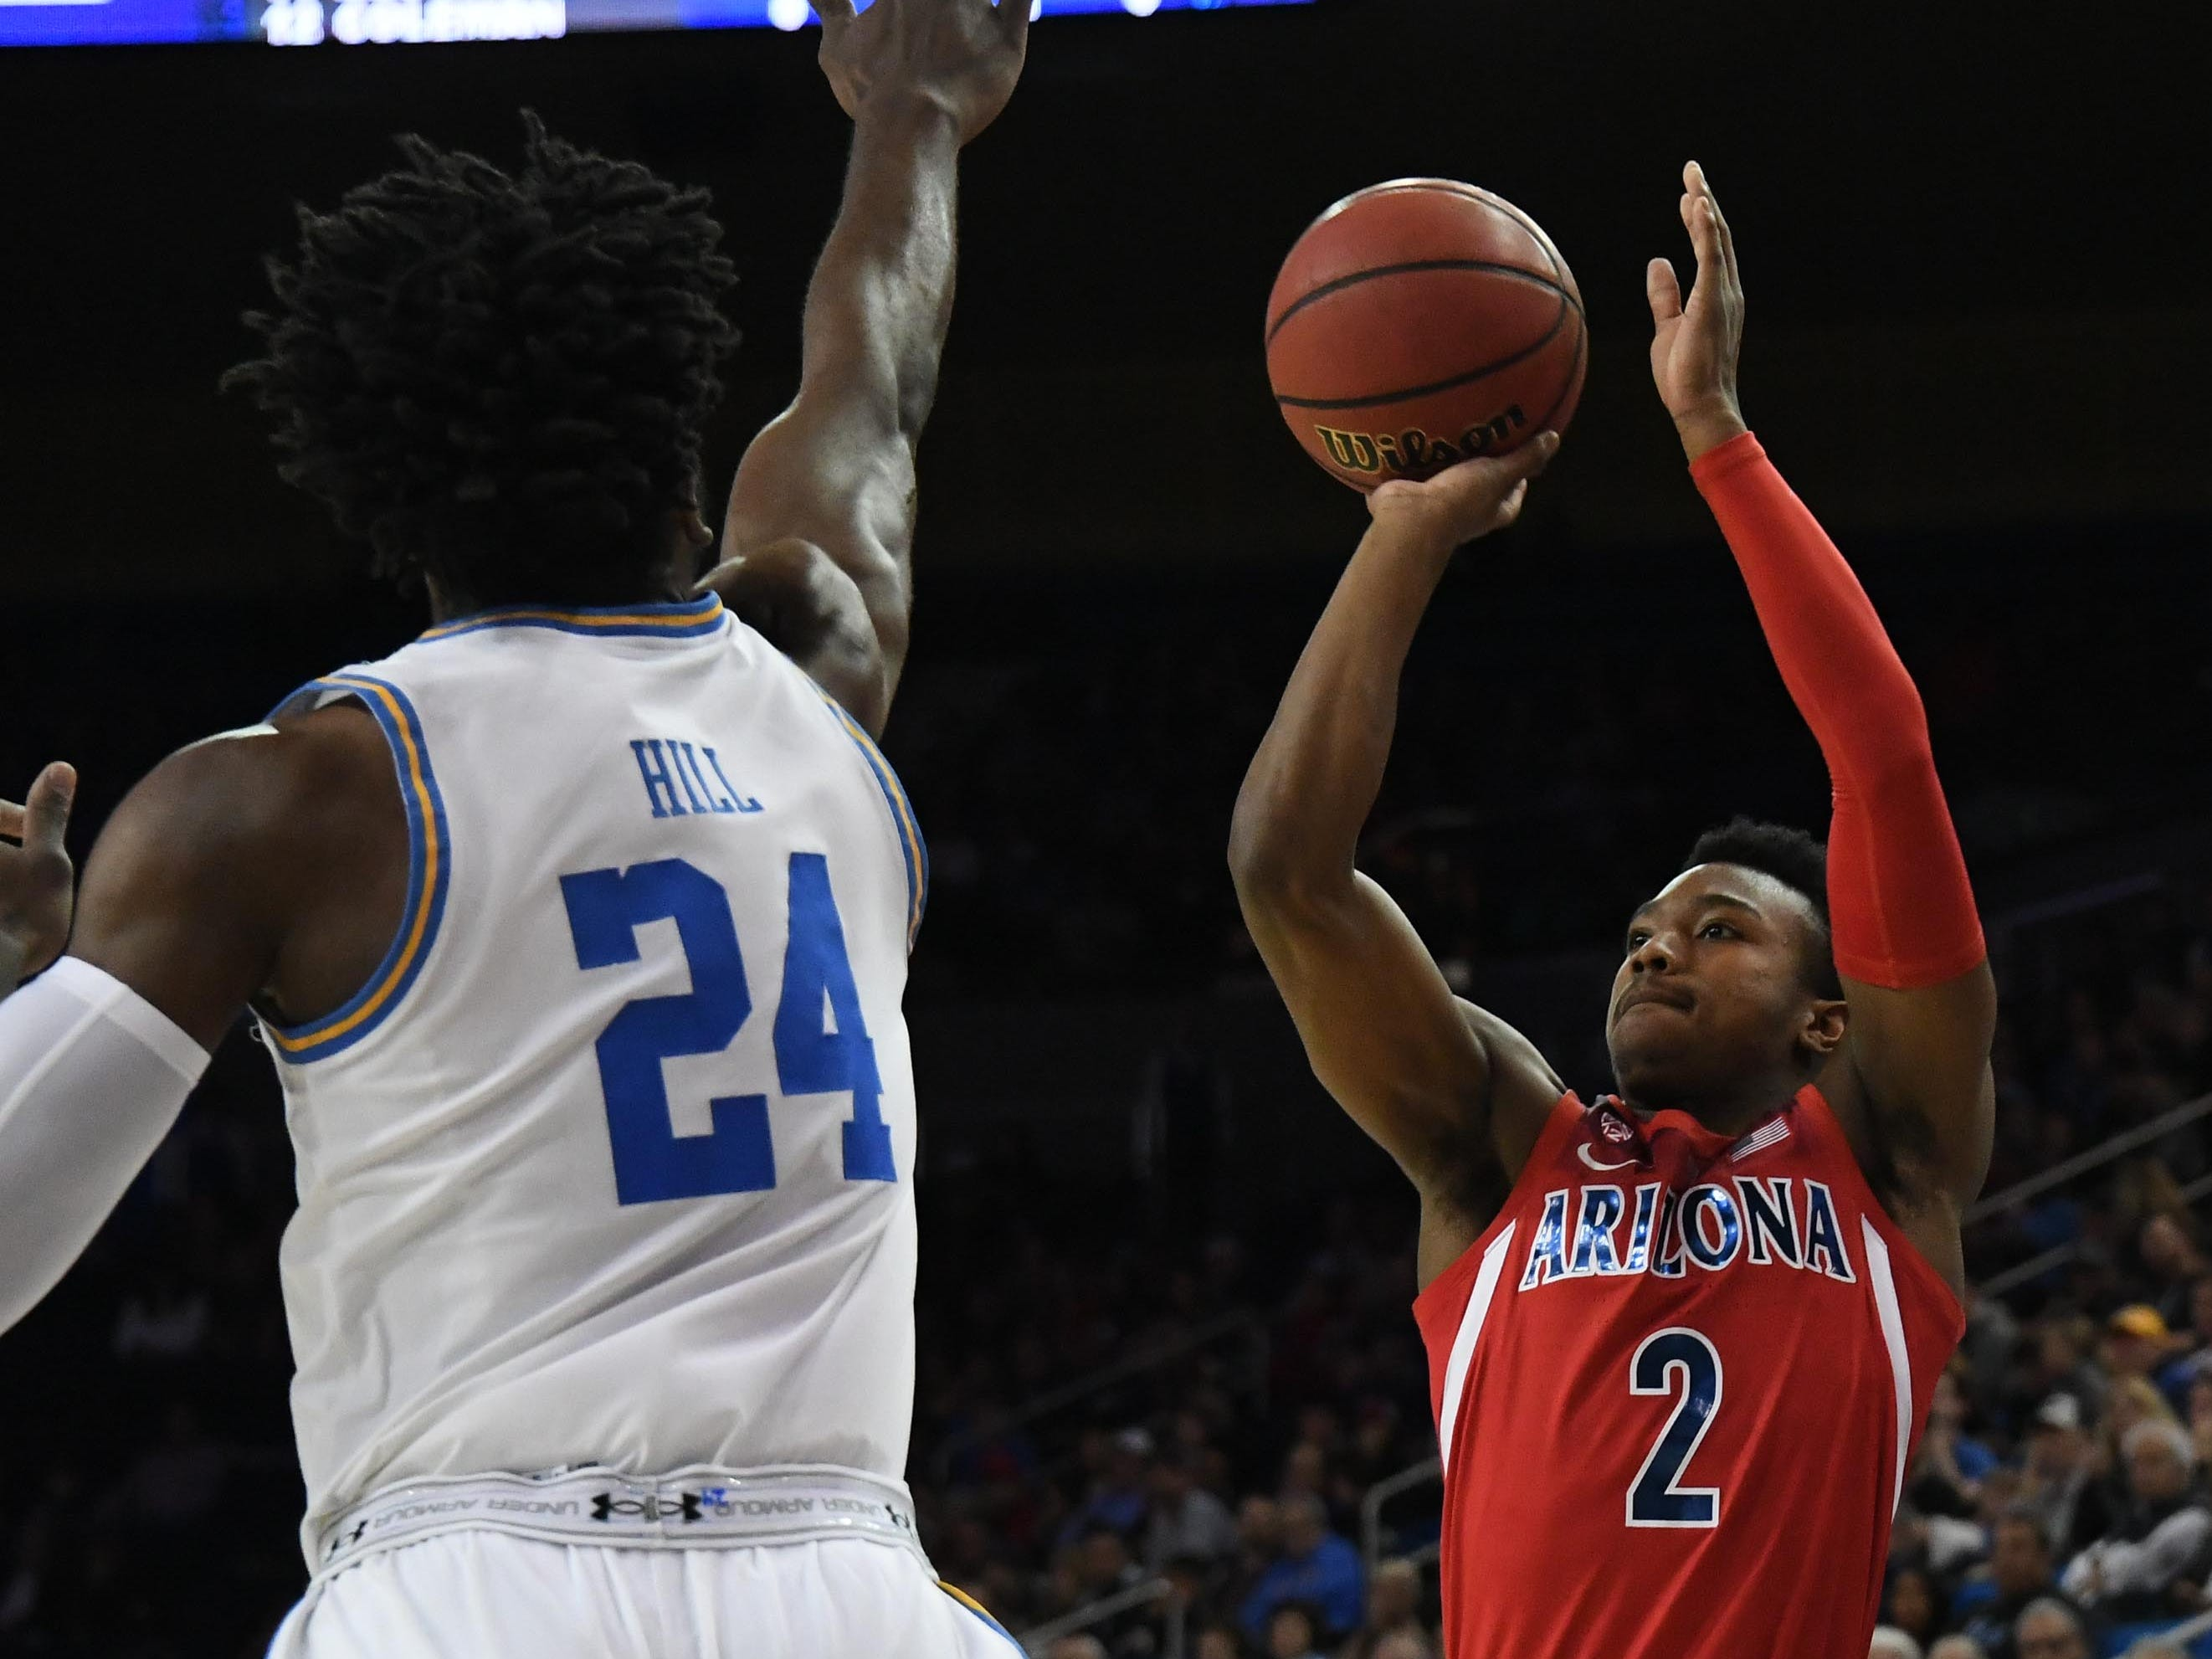 Jan 26, 2019; Los Angeles, CA, USA; Arizona Wildcats guard Brandon Williams (2) shoots against UCLA Bruins guard Jalen Hill (24) in the first half at Pauley Pavilion.